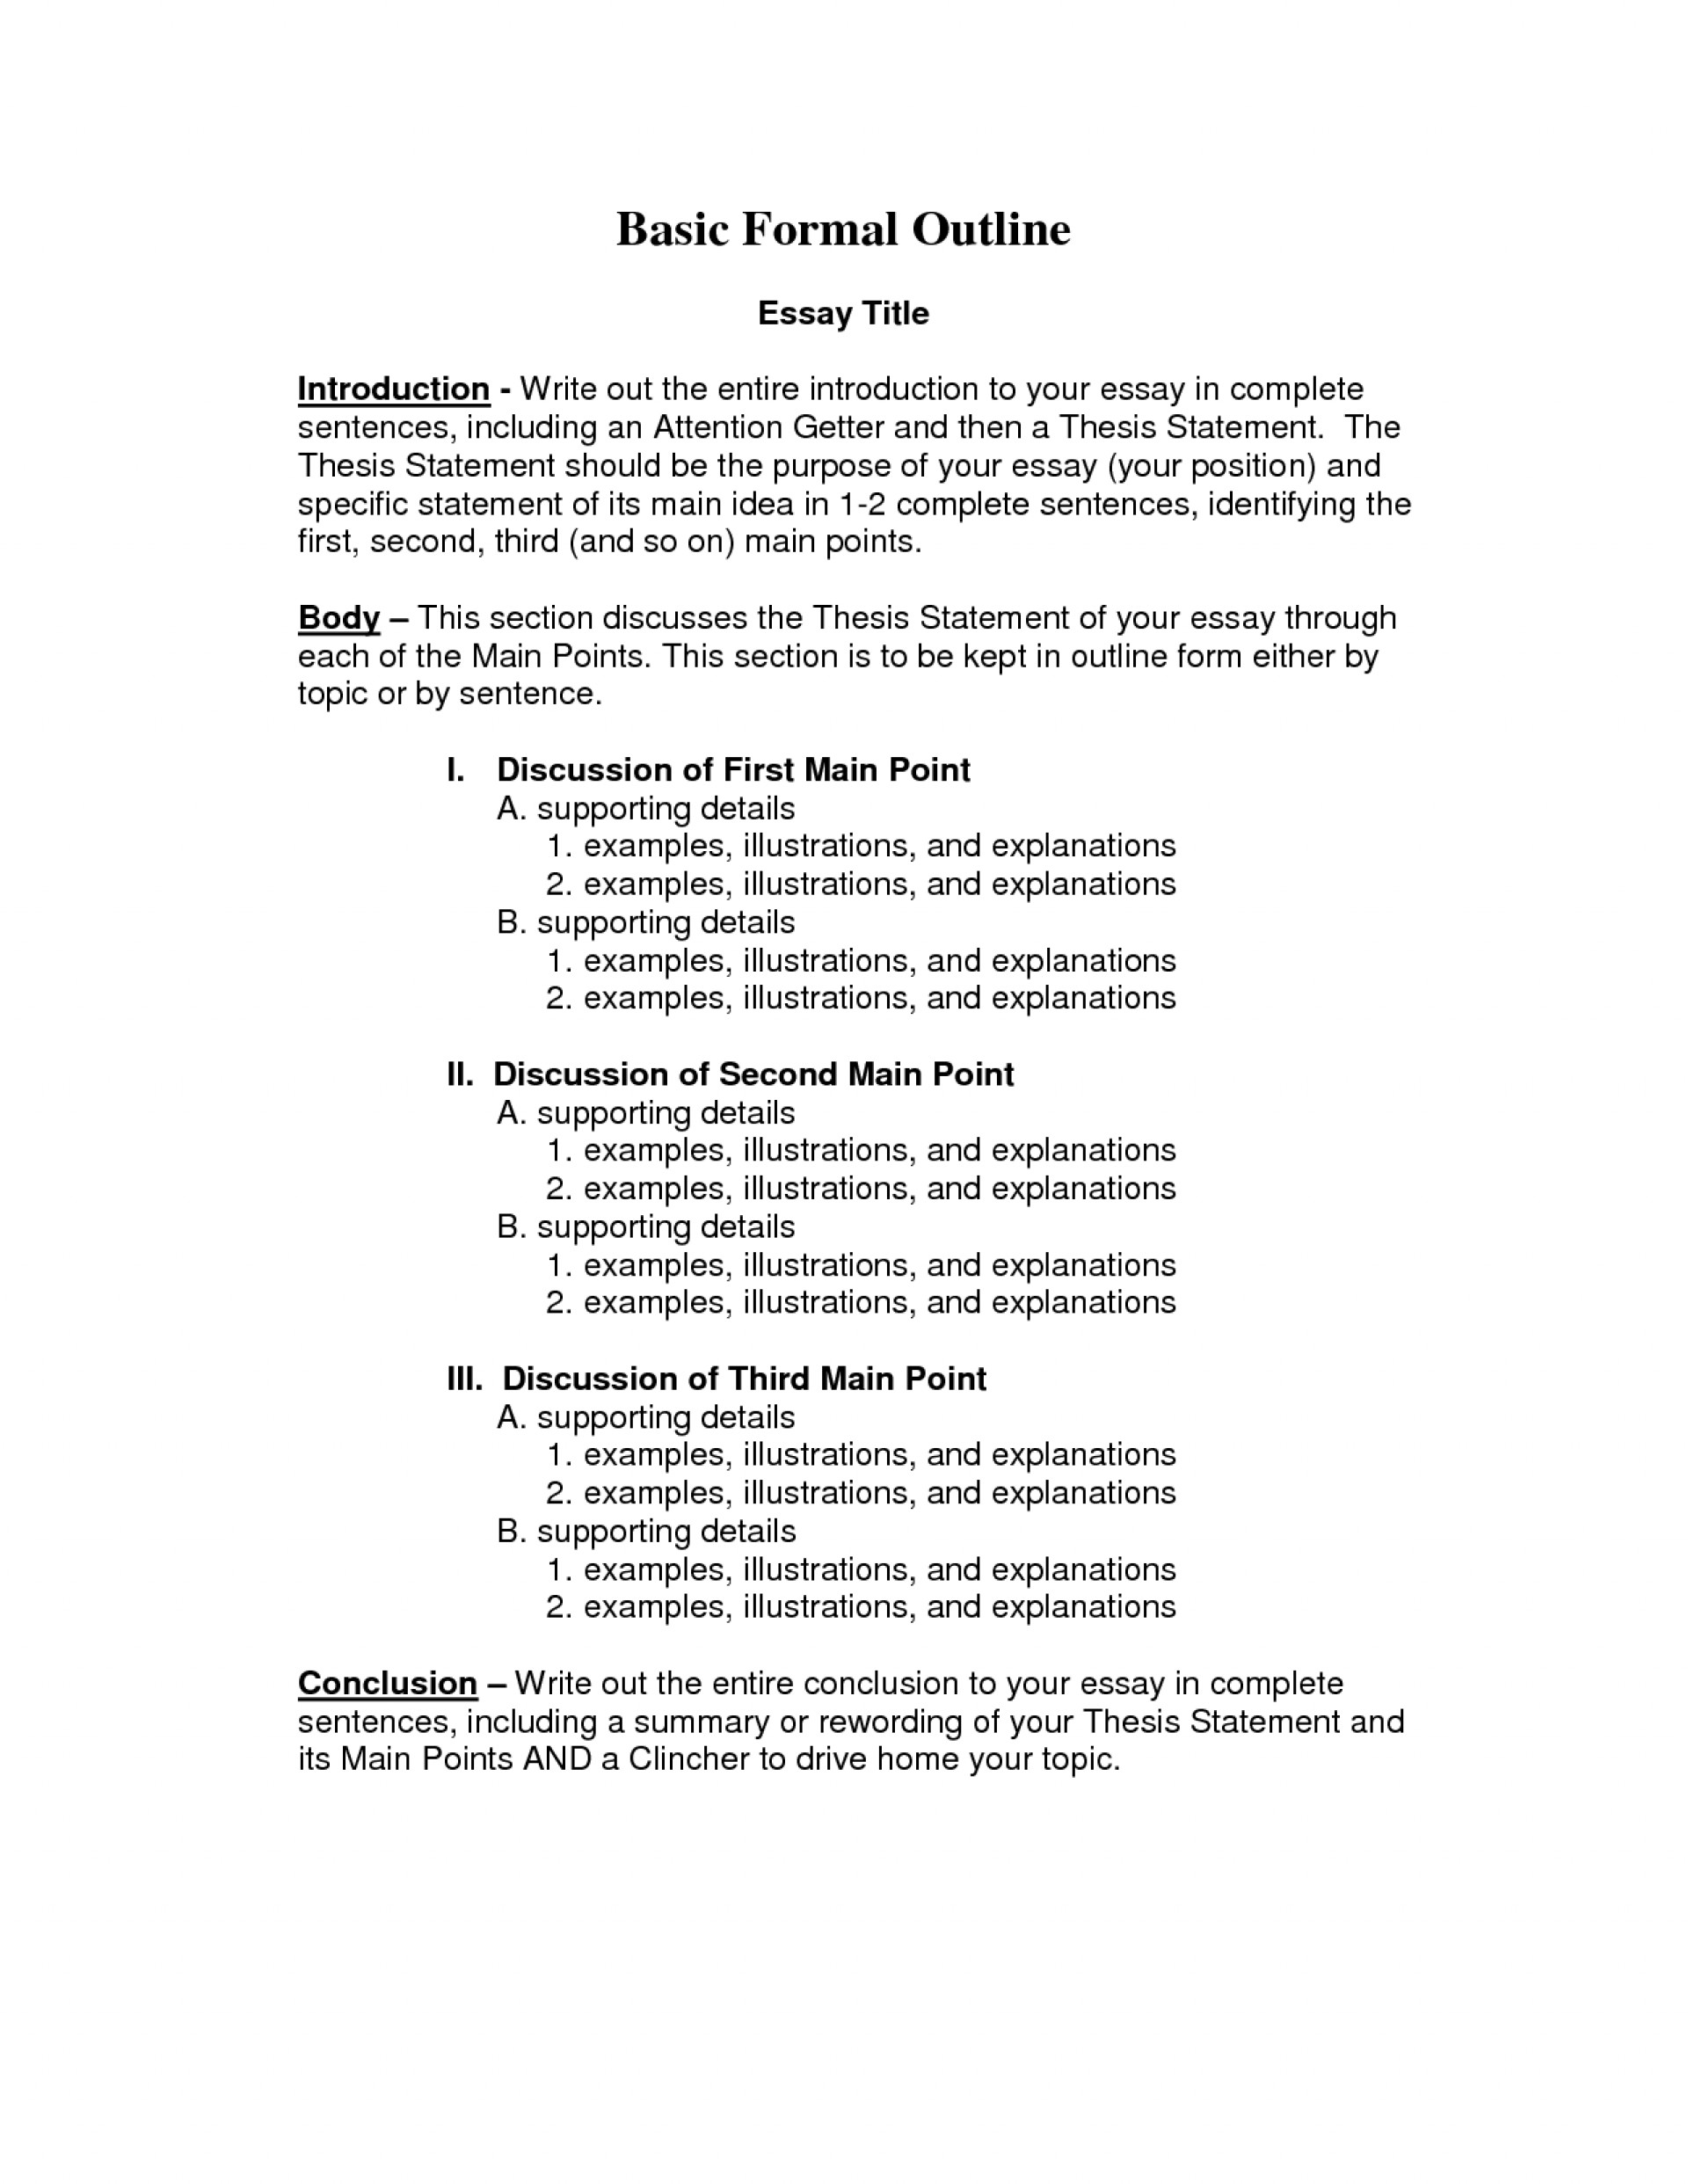 009 Essay Example Apply Texas Examples Formal Introduction Format Researchaper Help Tkpaperpbgo Outline 4 An For College Writing With Argument Good Dreaded B Prompt C Prompts 1920